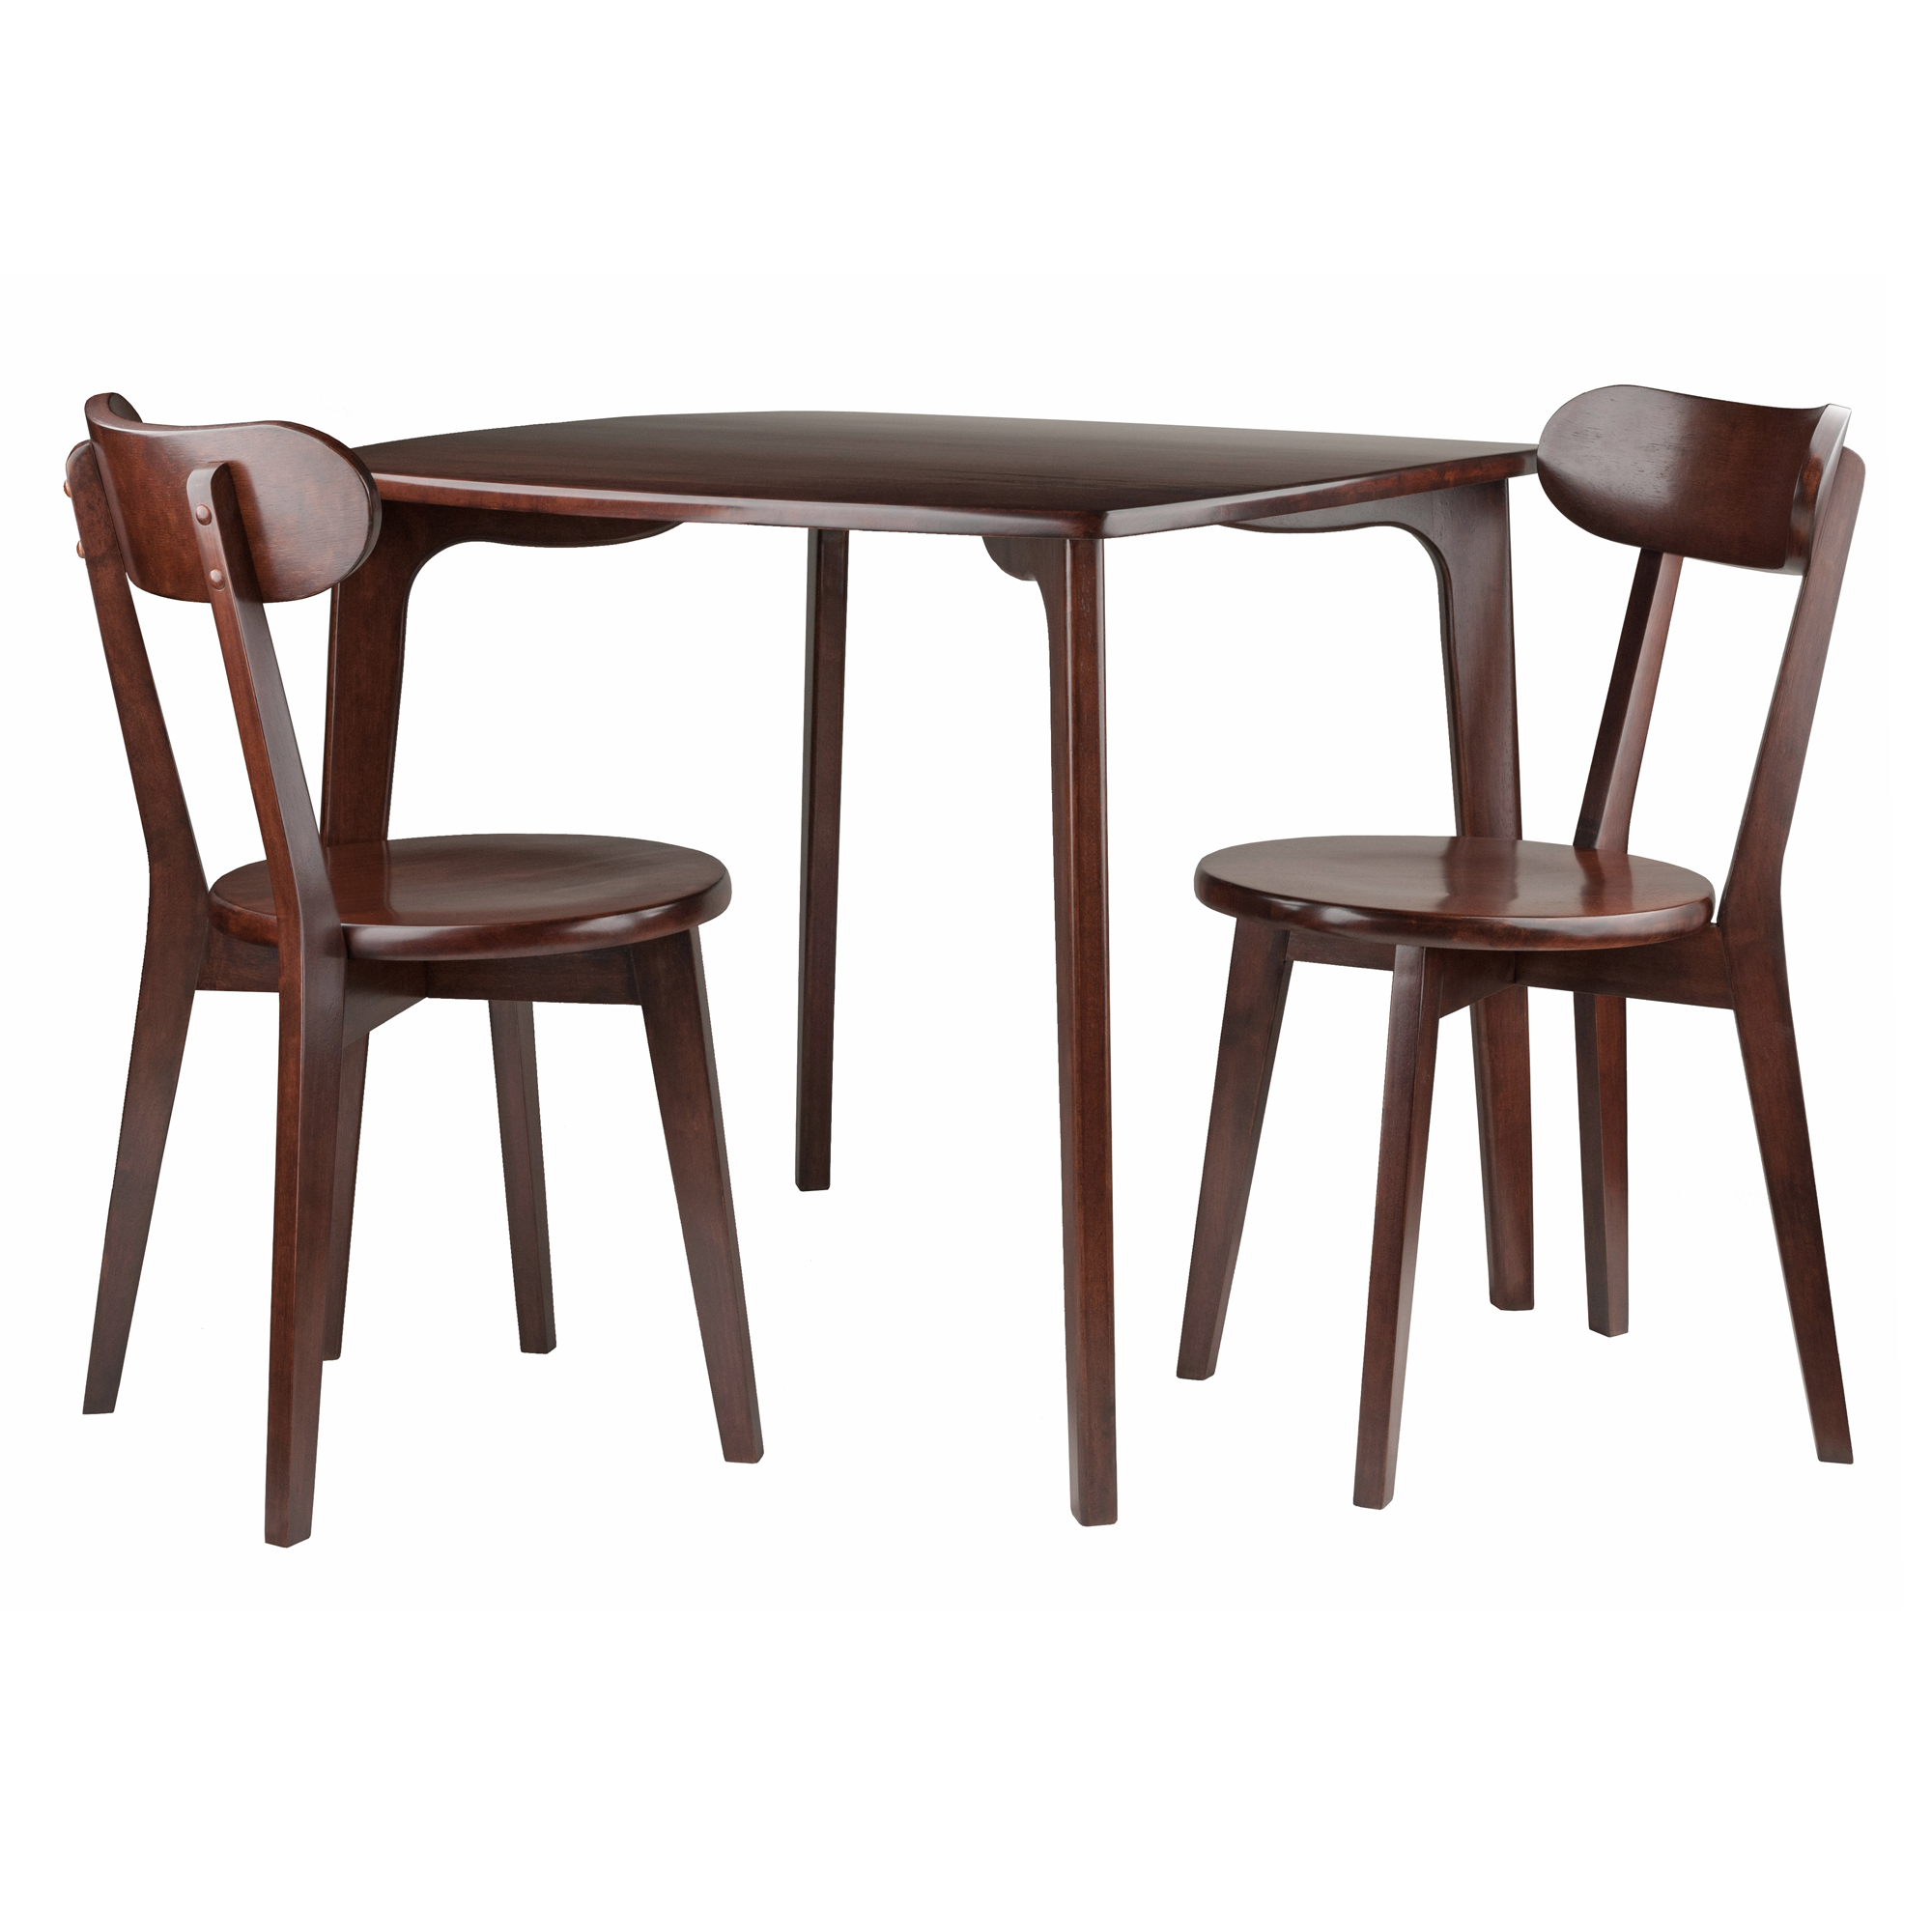 Inspiration about Winsome Wood Pauline 3 Piece Dining Table With Chairs Set, Walnut With Regard To Most Current Winsome 3 Piece Counter Height Dining Sets (#7 of 20)